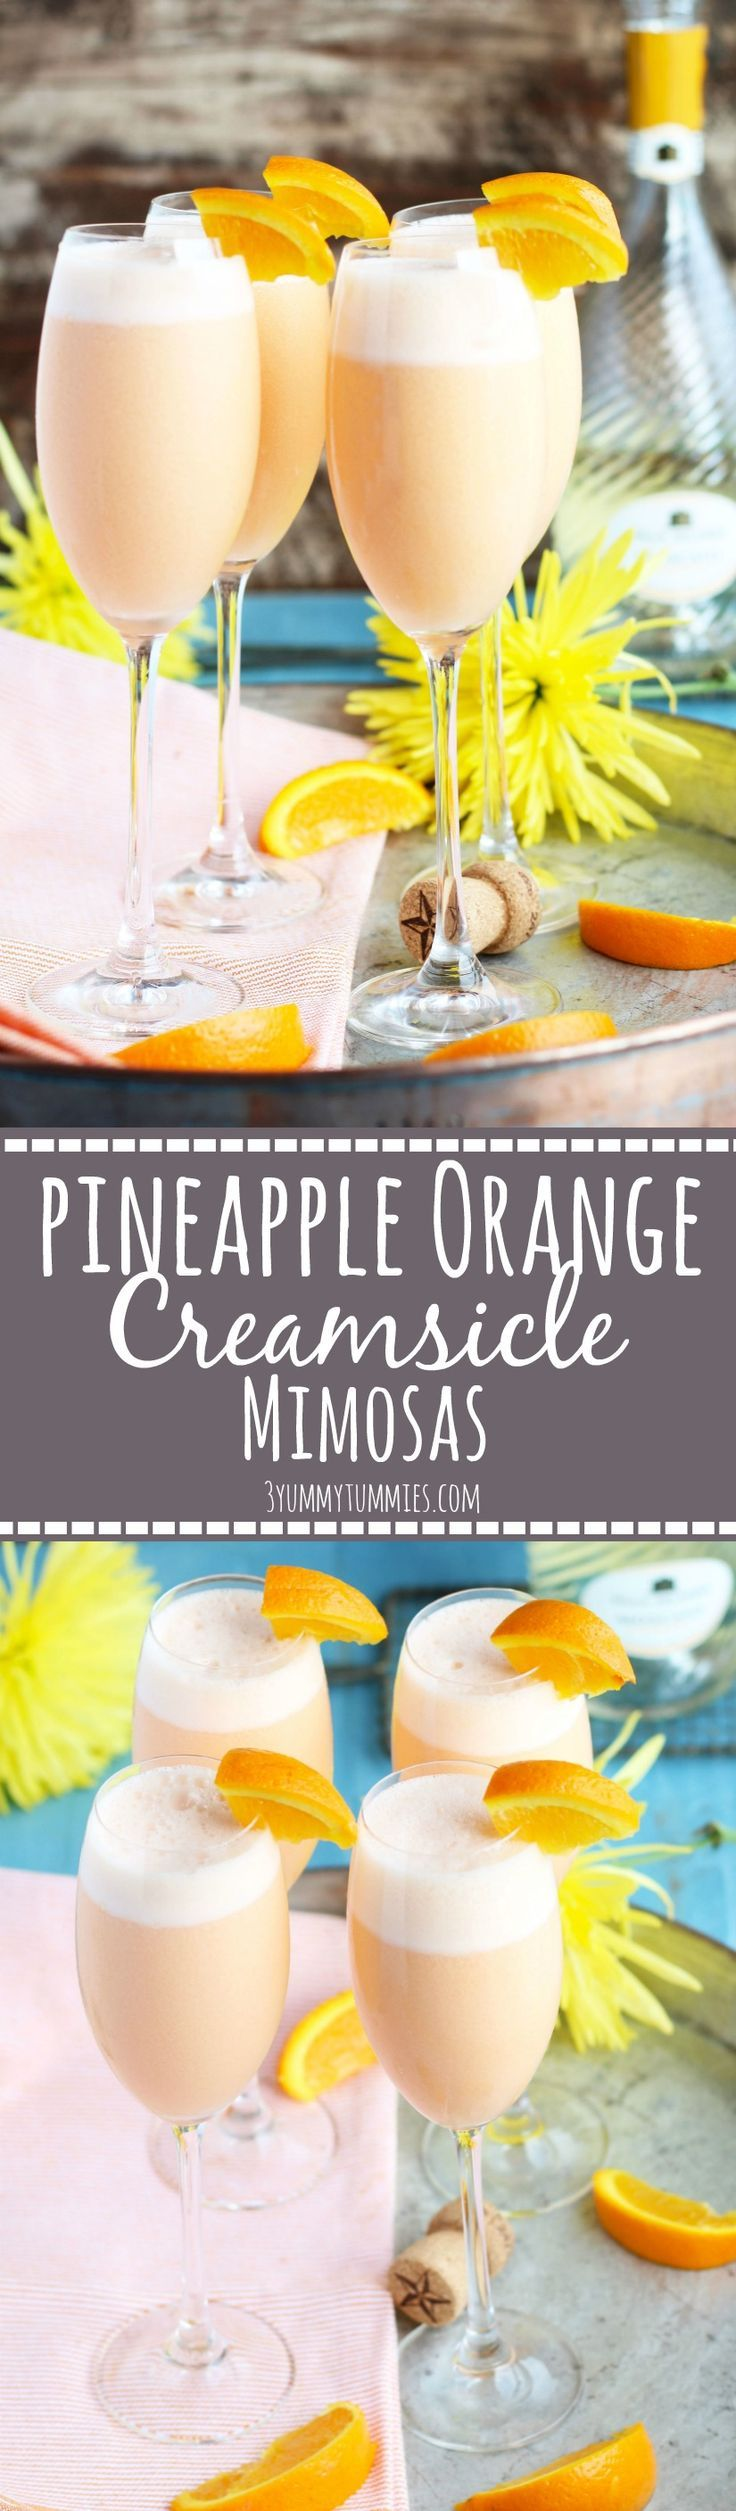 These Pineapple Orange Creamsicle Mimosas are an ethereal blend of pineapple juice, orange sherbet and sparkling Moscato.